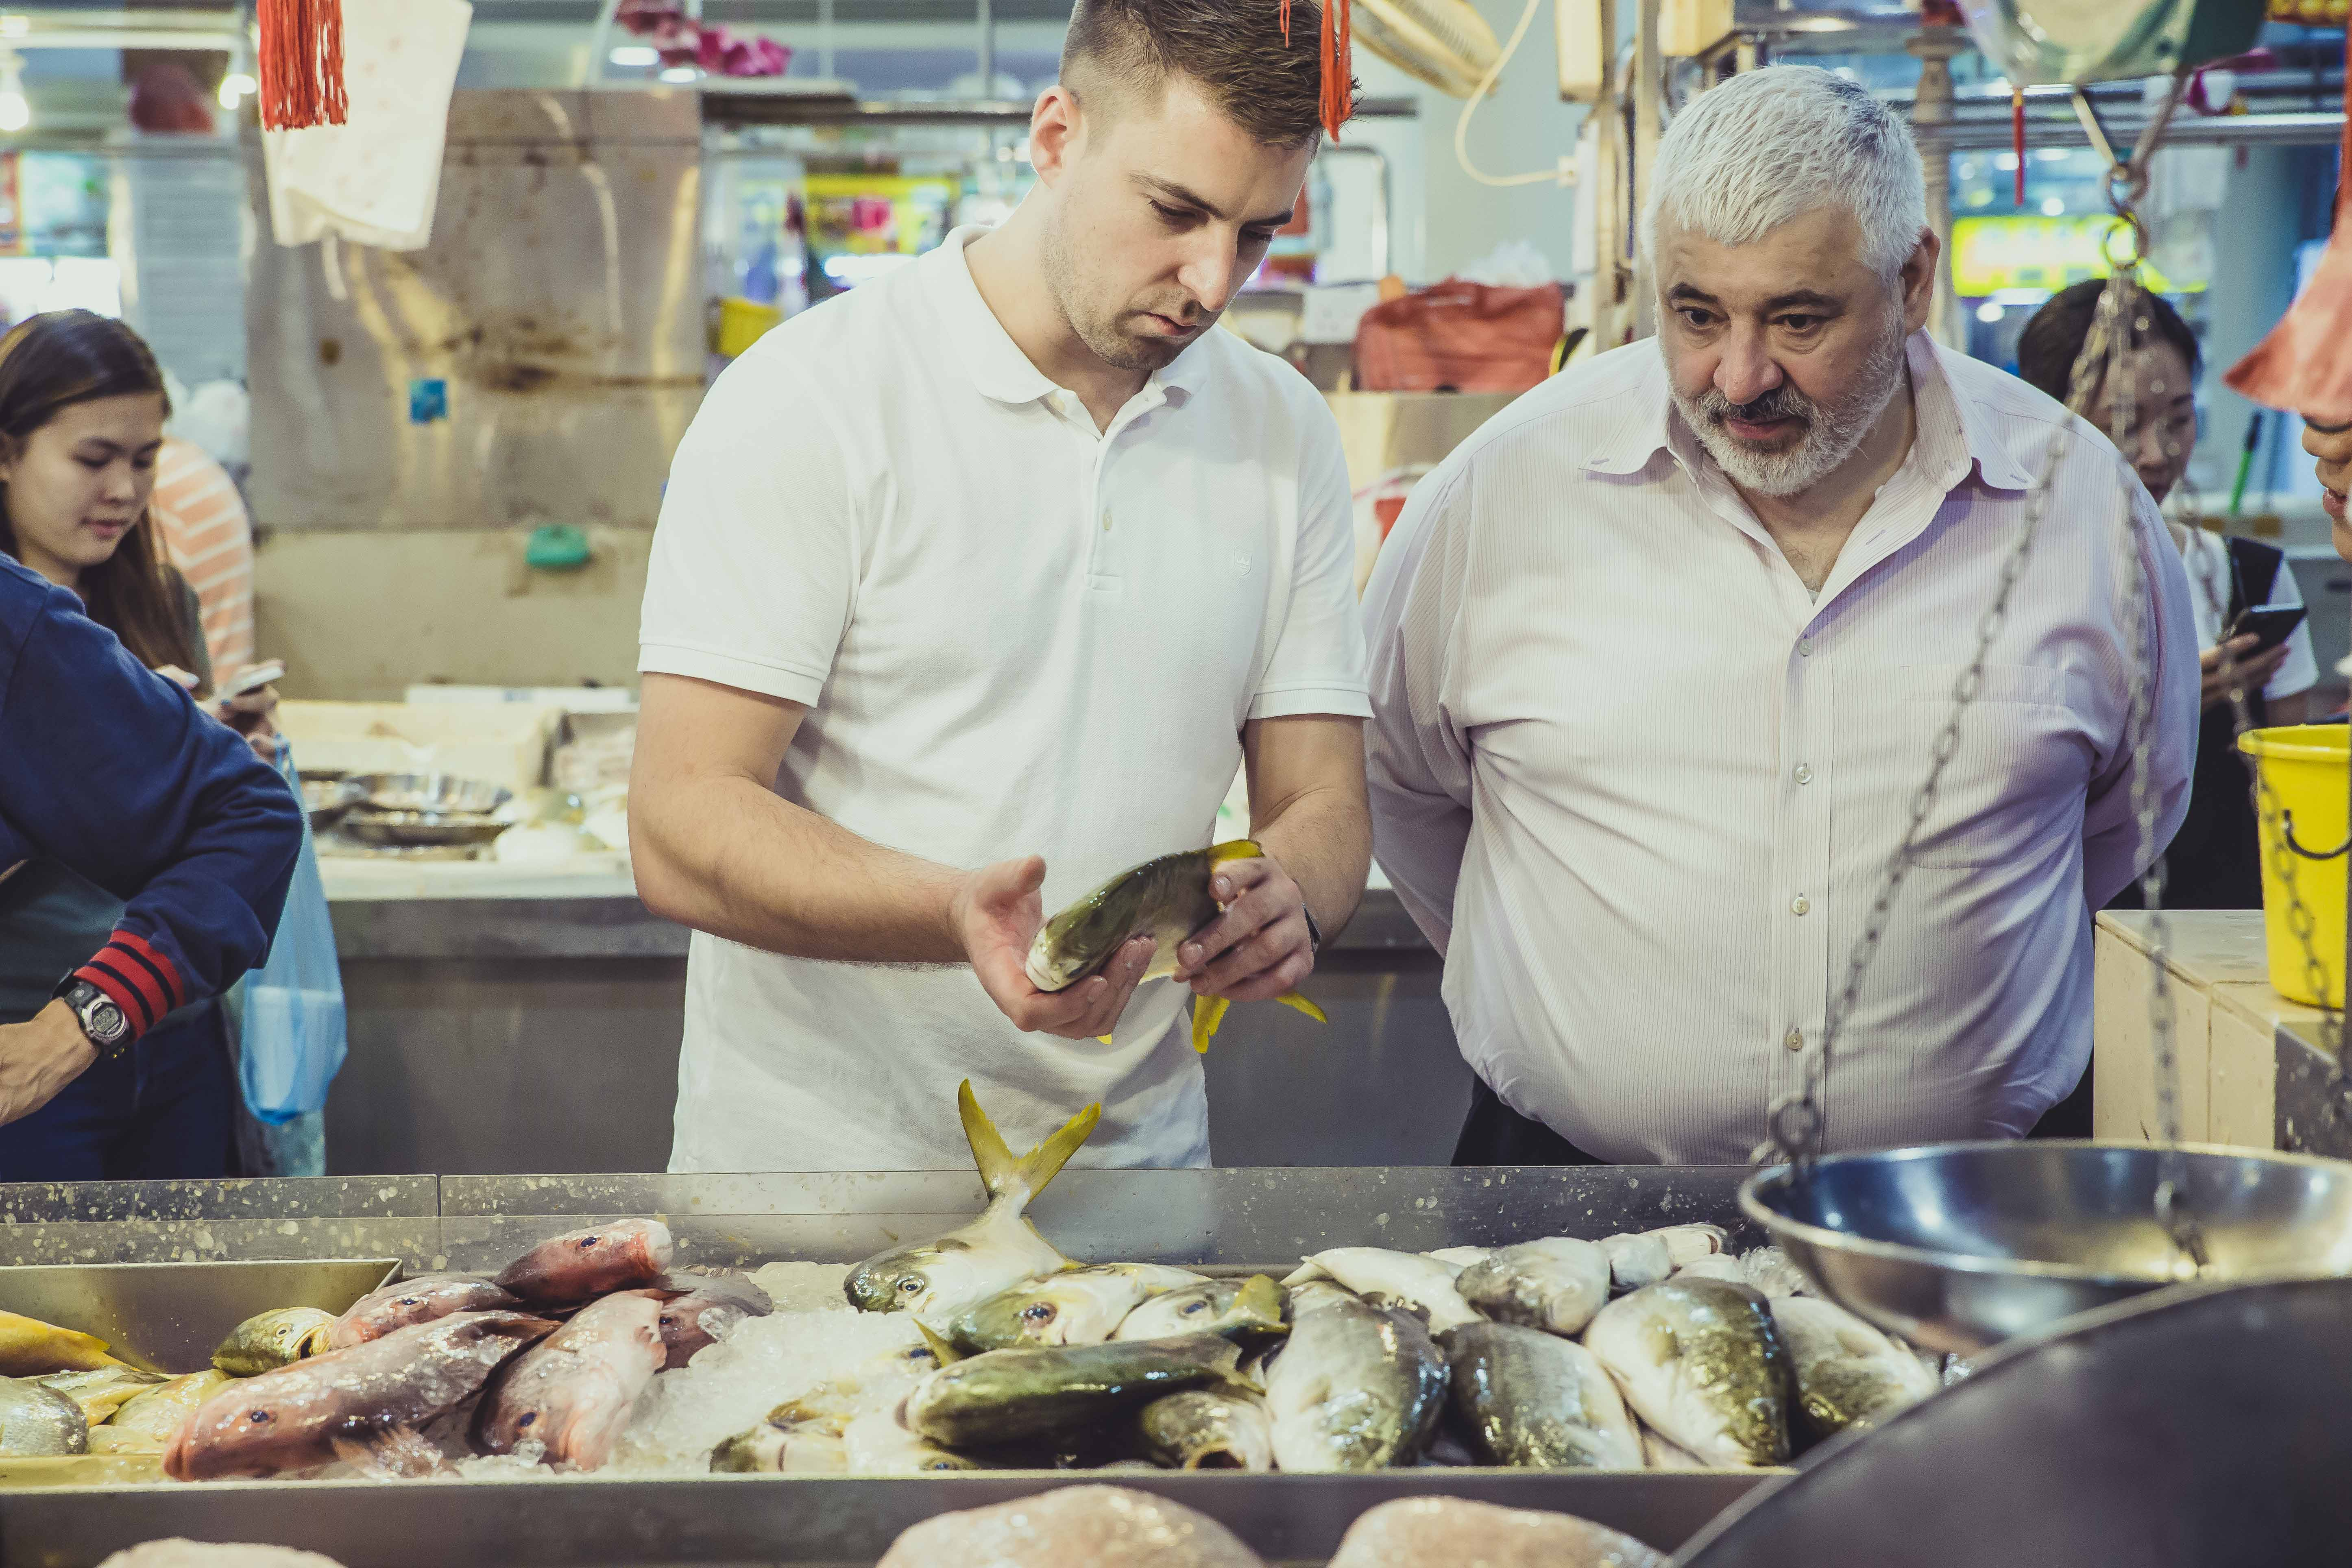 Get your hands dirty when buying fish